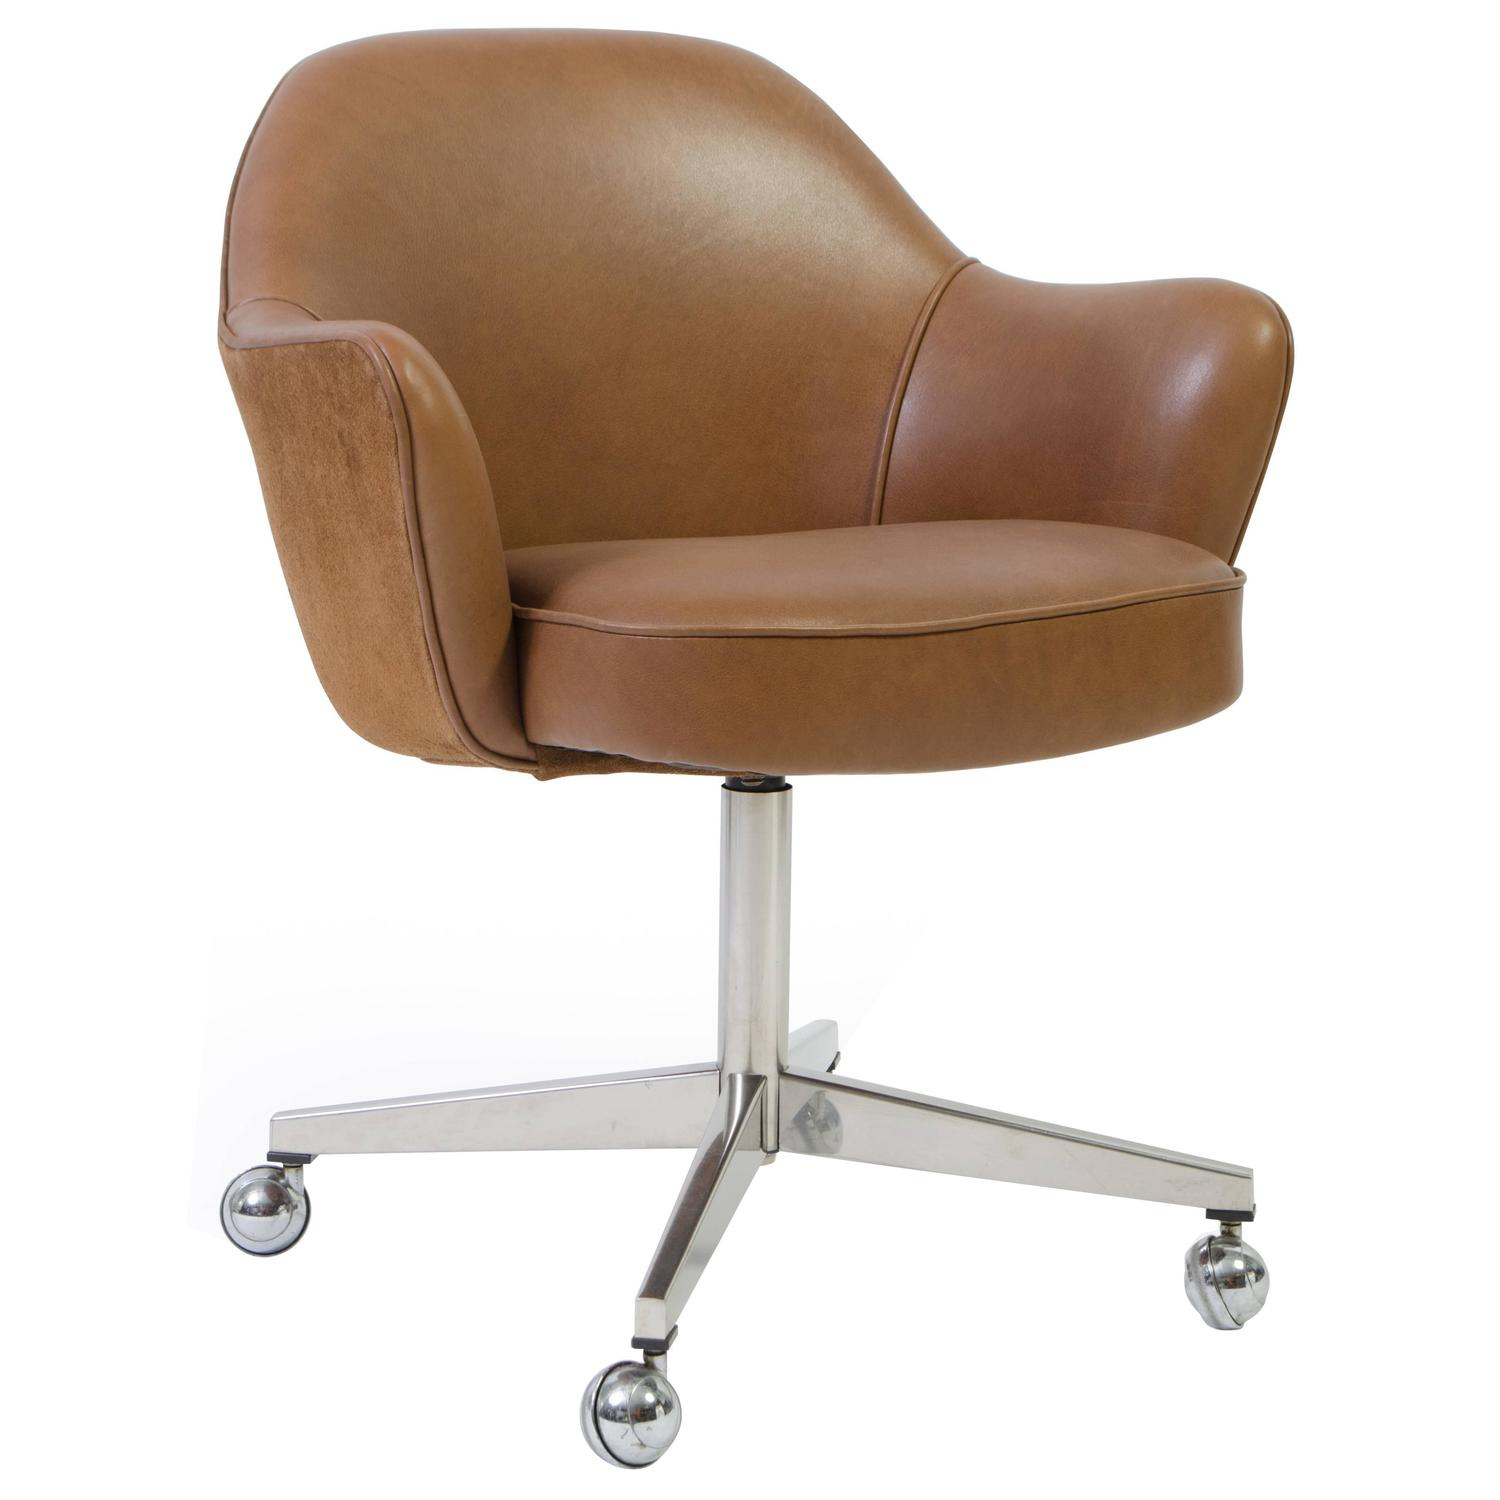 Saarinen for Knoll Executive Arm Chair in Saddle Leather and Suede, Swivel  Base For Sale at 1stdibs - Saarinen For Knoll Executive Arm Chair In Saddle Leather And Suede